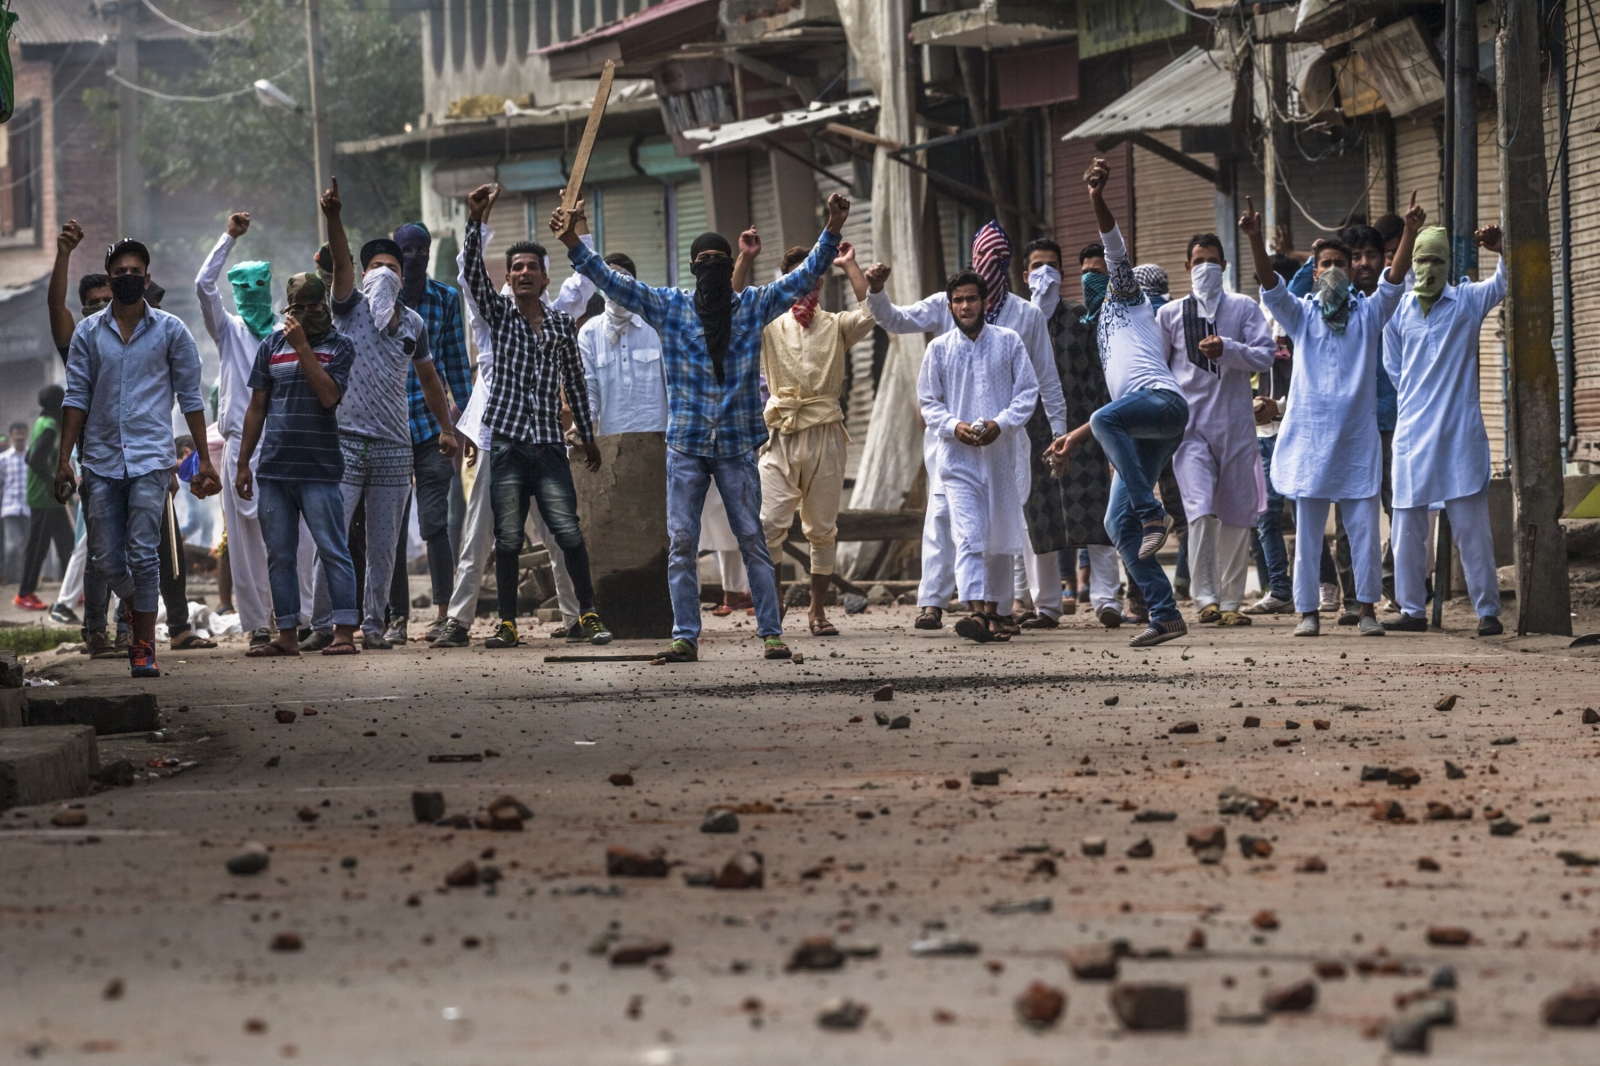 Kashmiri protesters shout slogans and throw stones during clashes with Indian Central Reserve Police Force (CRPF) and security personnel during a strict curfew on Eid-al-Adha, one of the most important religious festivals in the Muslim calendar, in the Batamloo area of Srinagar on September 13, 2016.